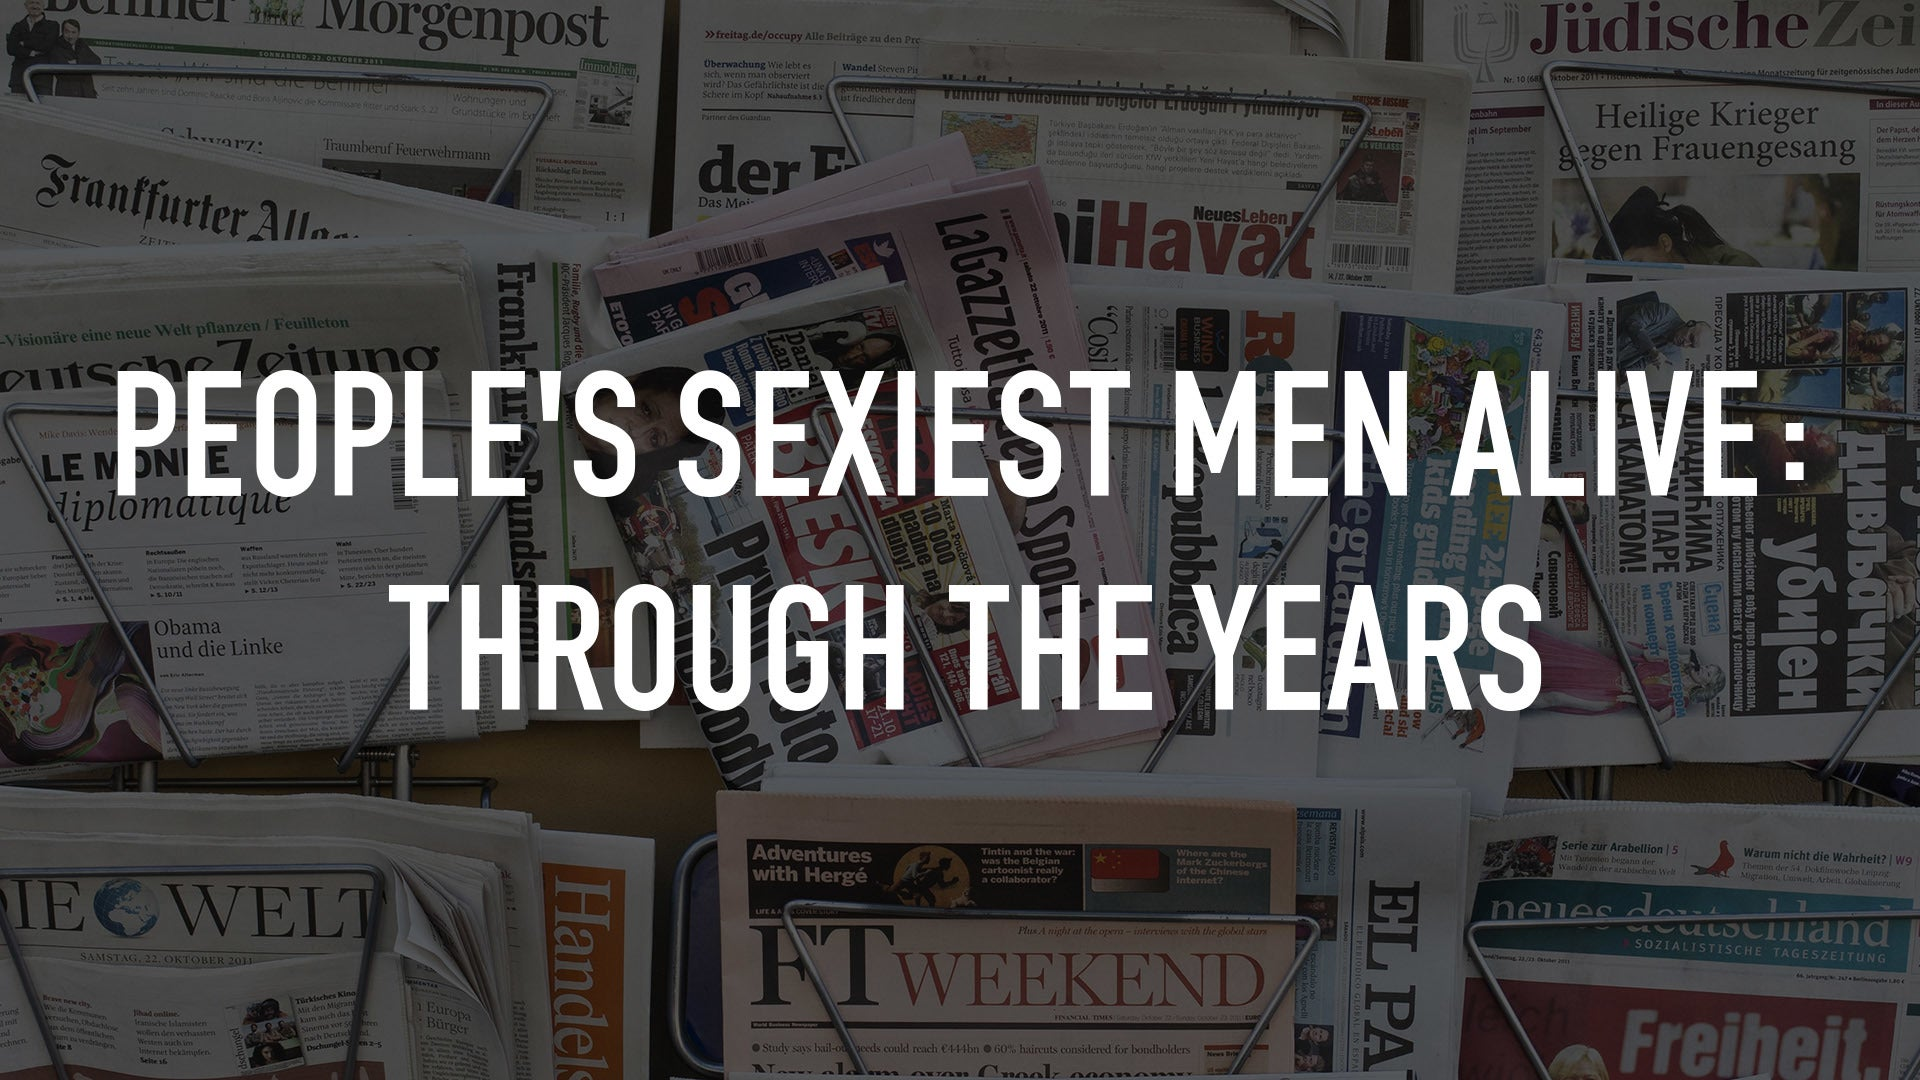 People's Sexiest Men Alive: Through the Years